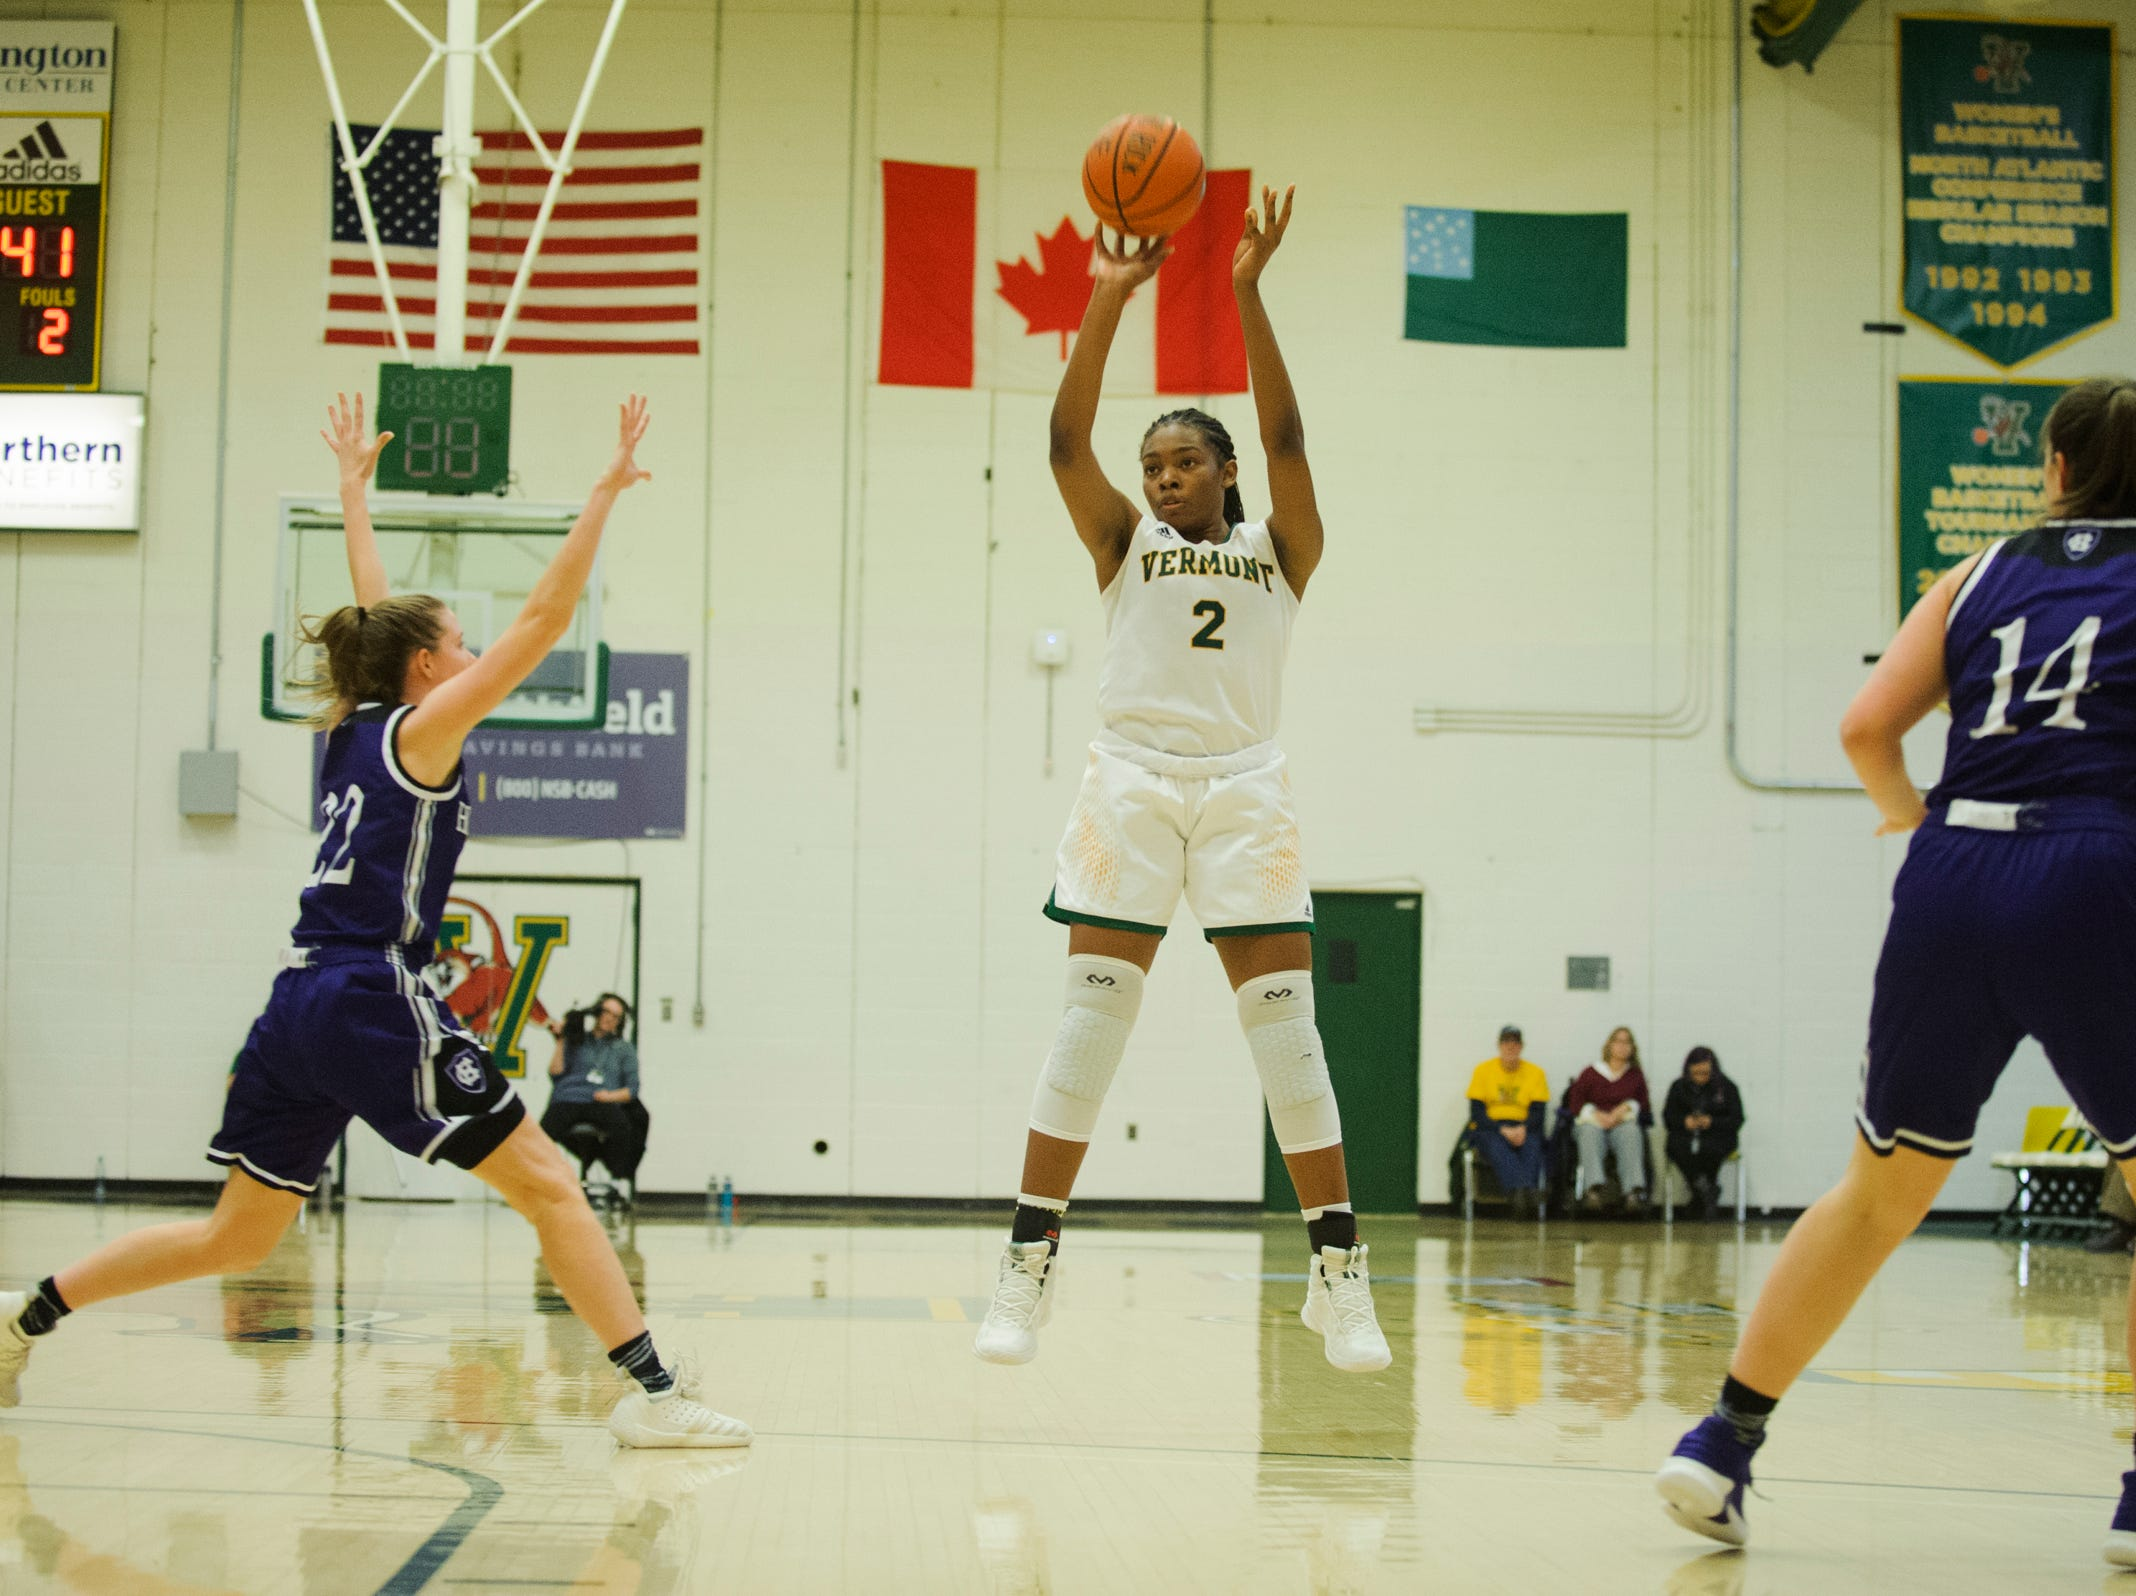 Vermont's Nicole Crum (2) shoots a three pointer during the women's basketball game between the Holy Cross Crusaders and the Vermont Catamounts at Patrick Gym on Wednesday night November 28, 2018 in Burlington.